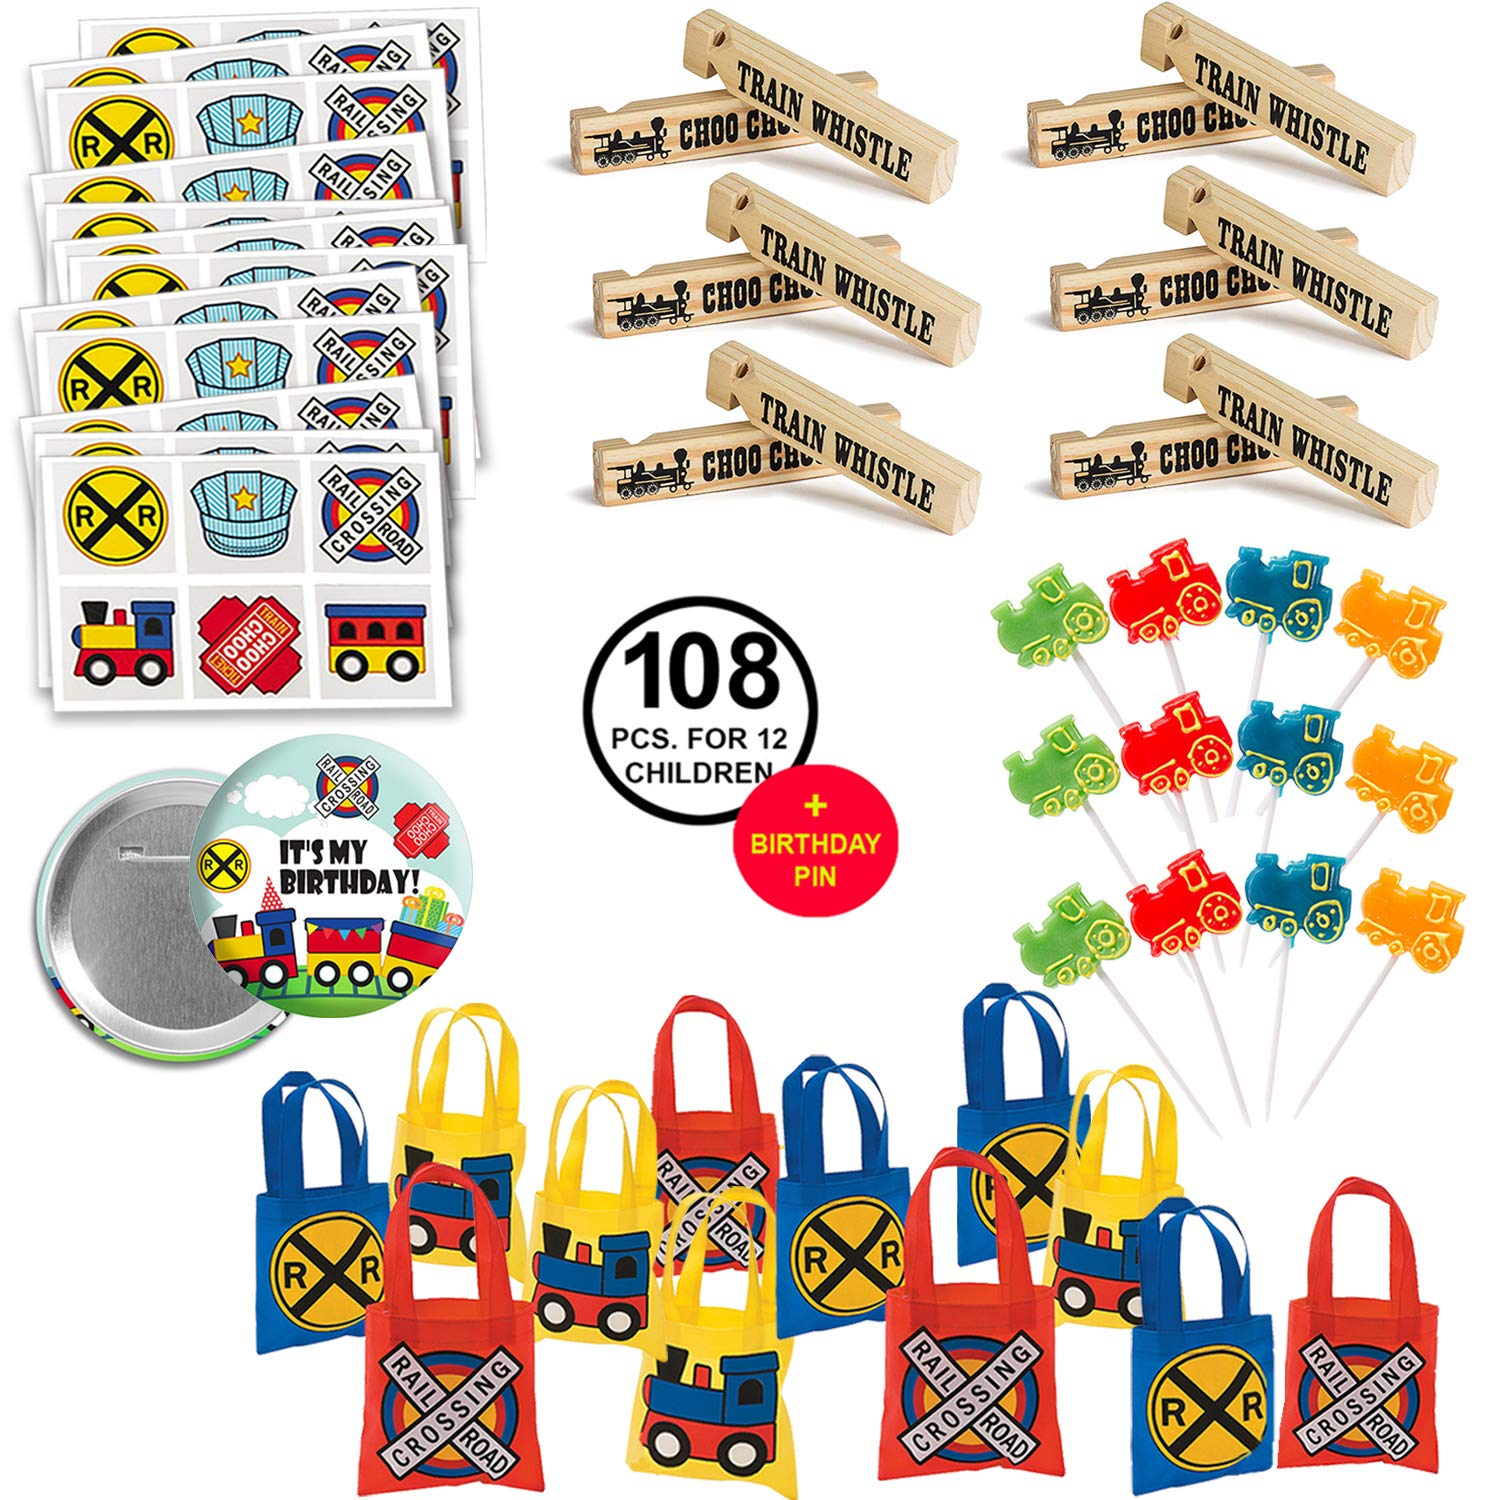 Train Party Favors Party Pack Bundle Includes Favor Bags and Fun Favors for 12